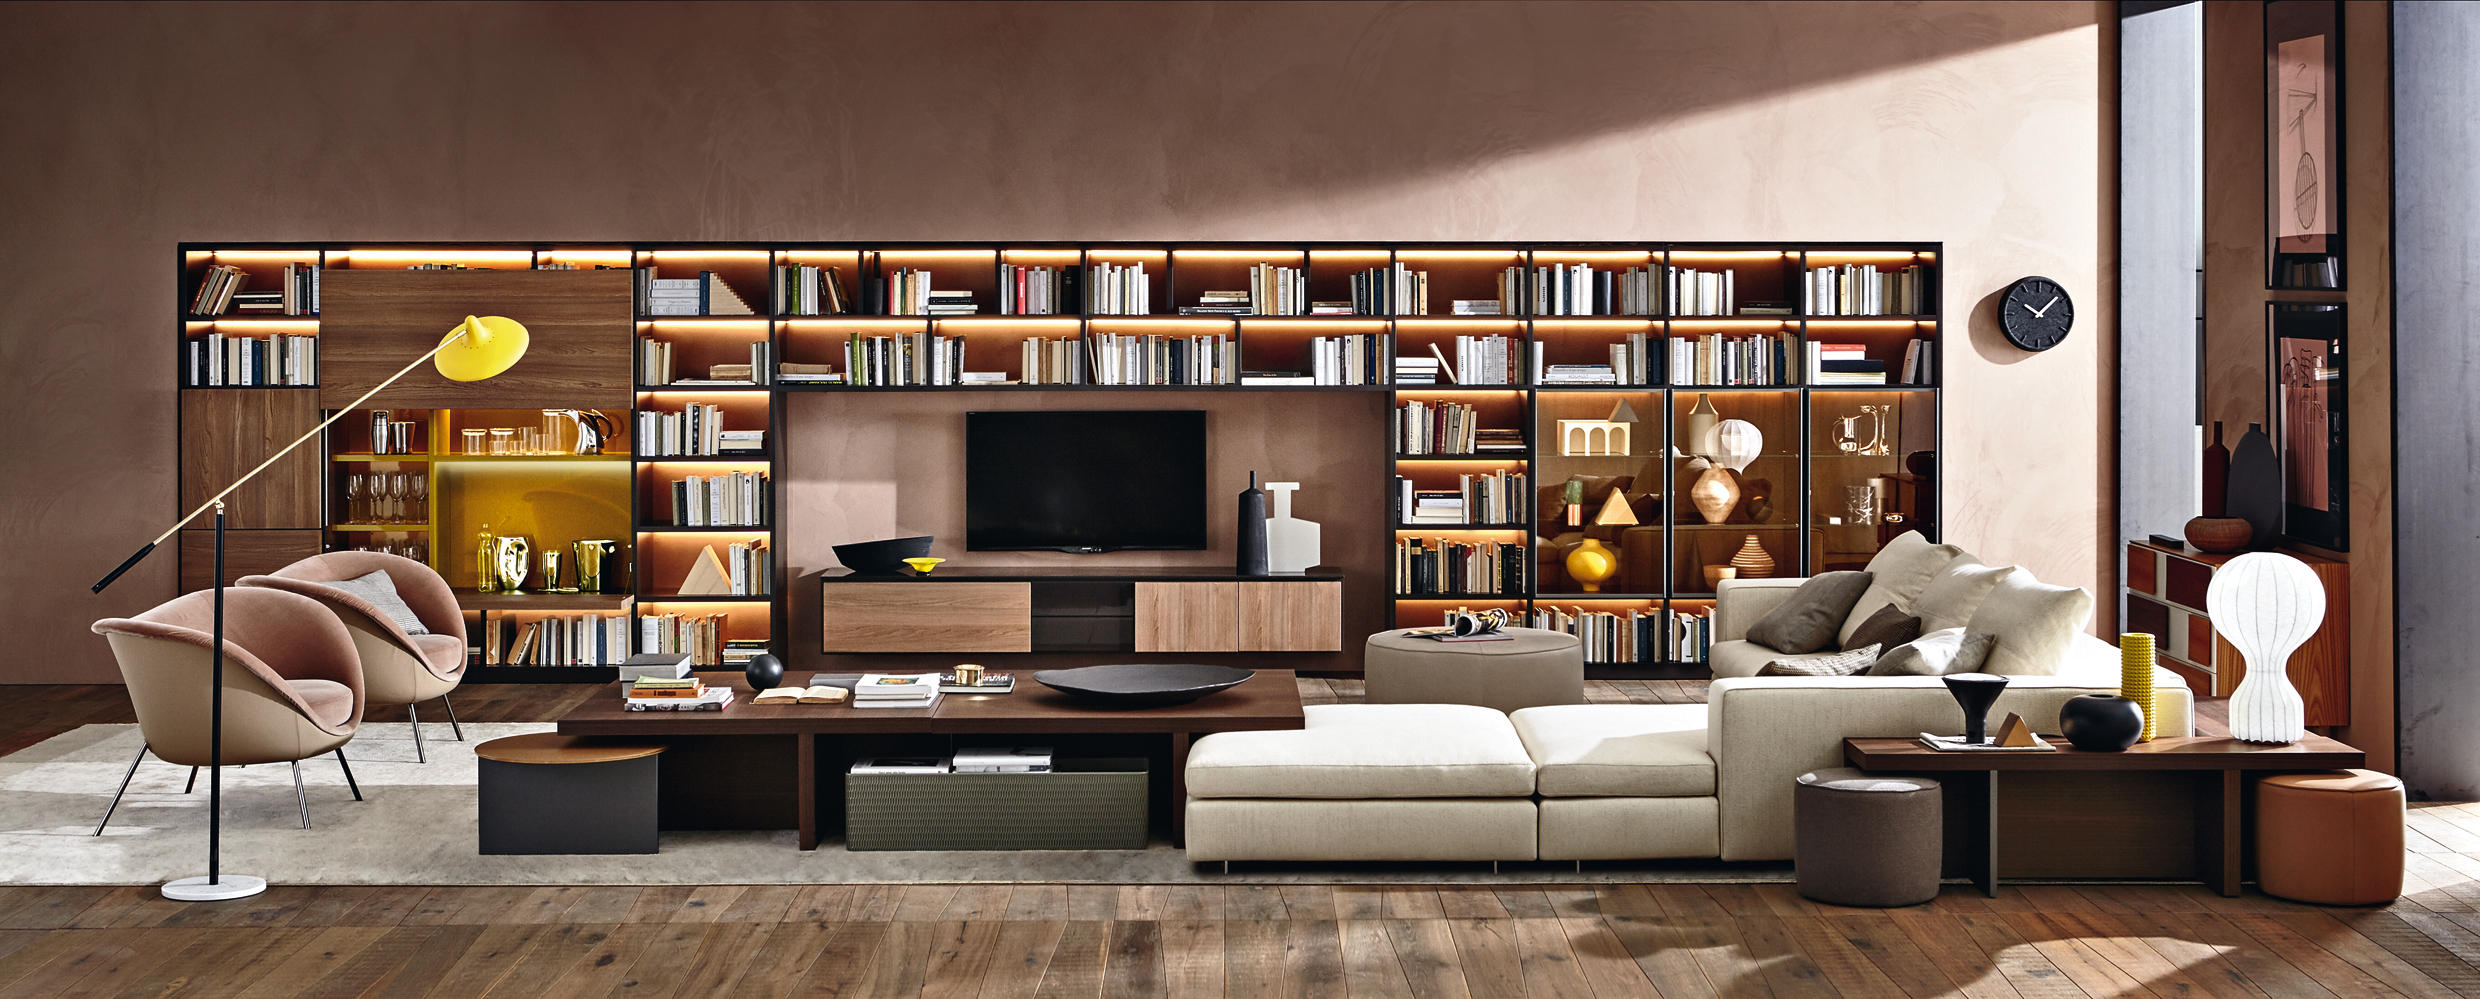 bookshelves-505-multimedia-008-tetris-d1542-b